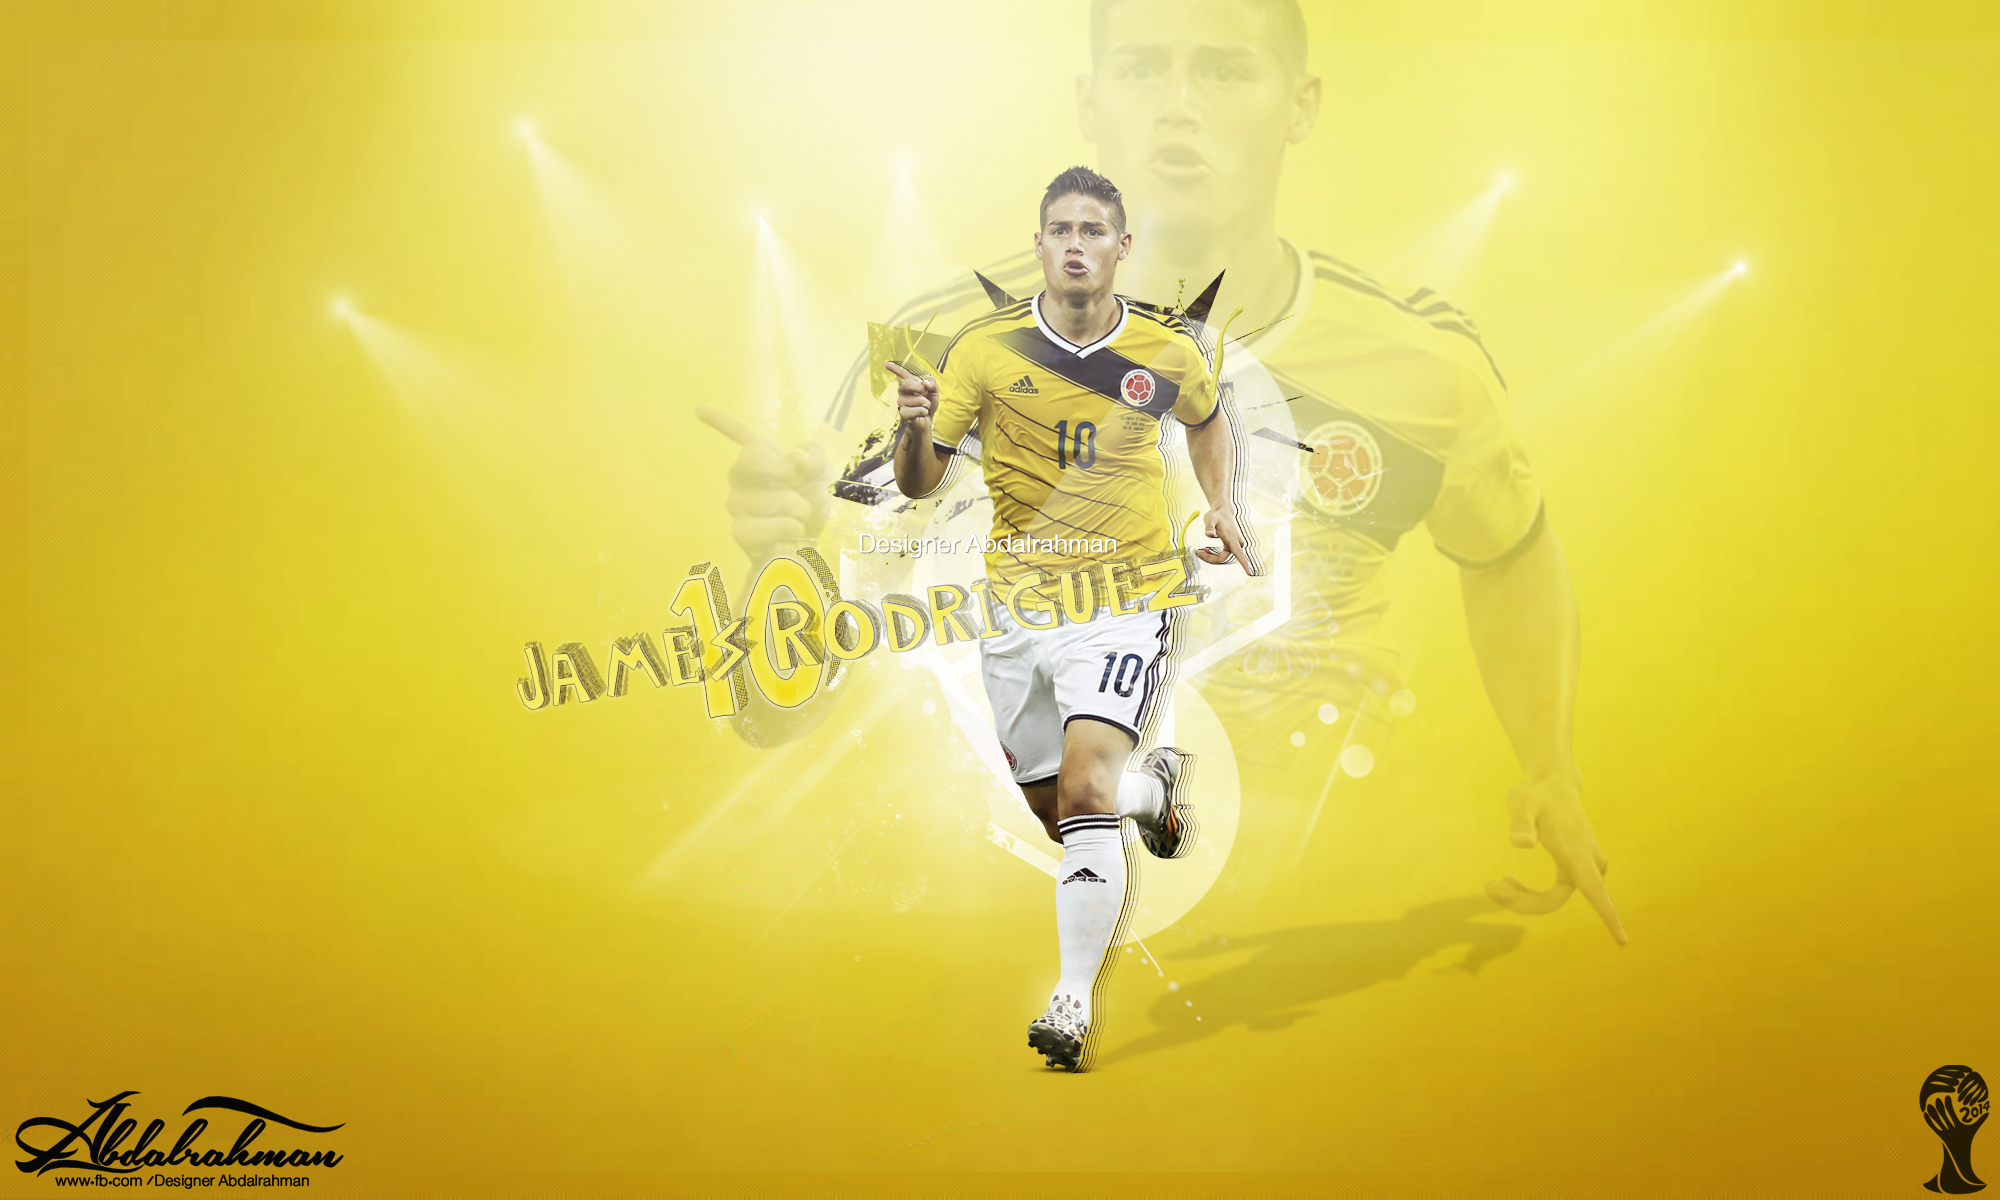 James Rodriguez Wallpapers High Resolution And Quality Download